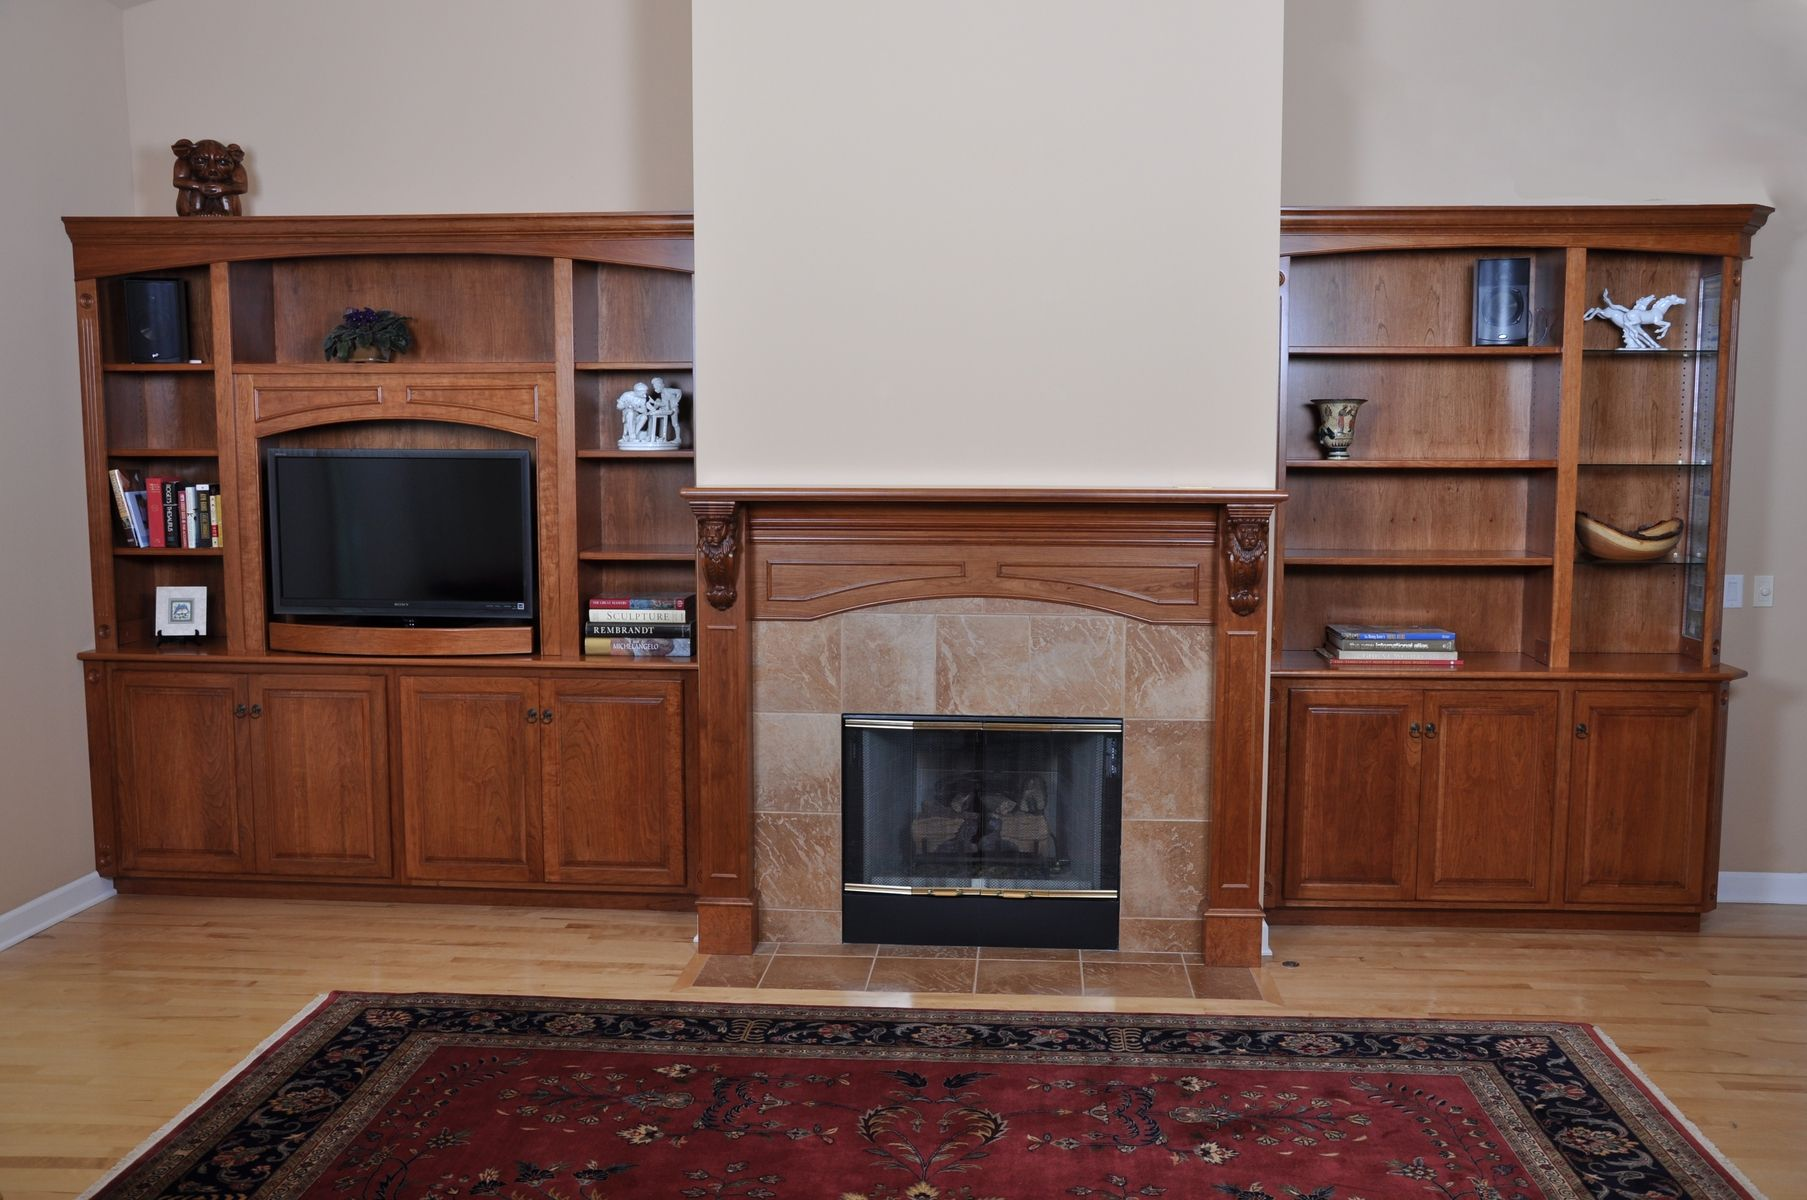 Custom Fireplace Mantel And Entertainment Center by H&M ...